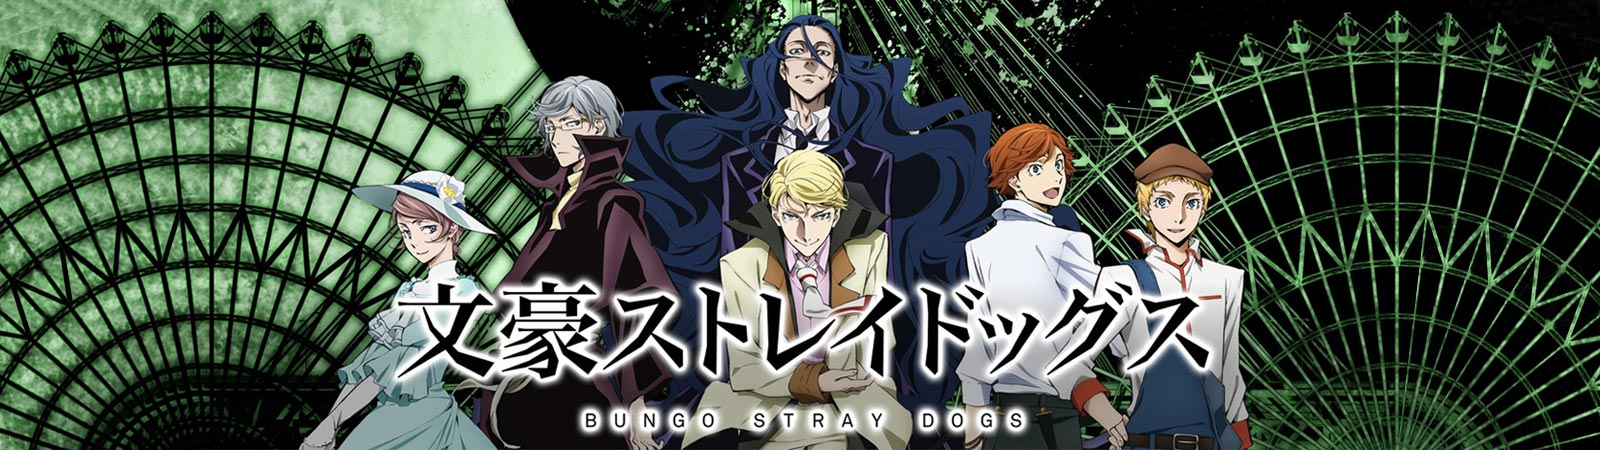 Tập 4 - Bungou Stray Dogs - Season 2